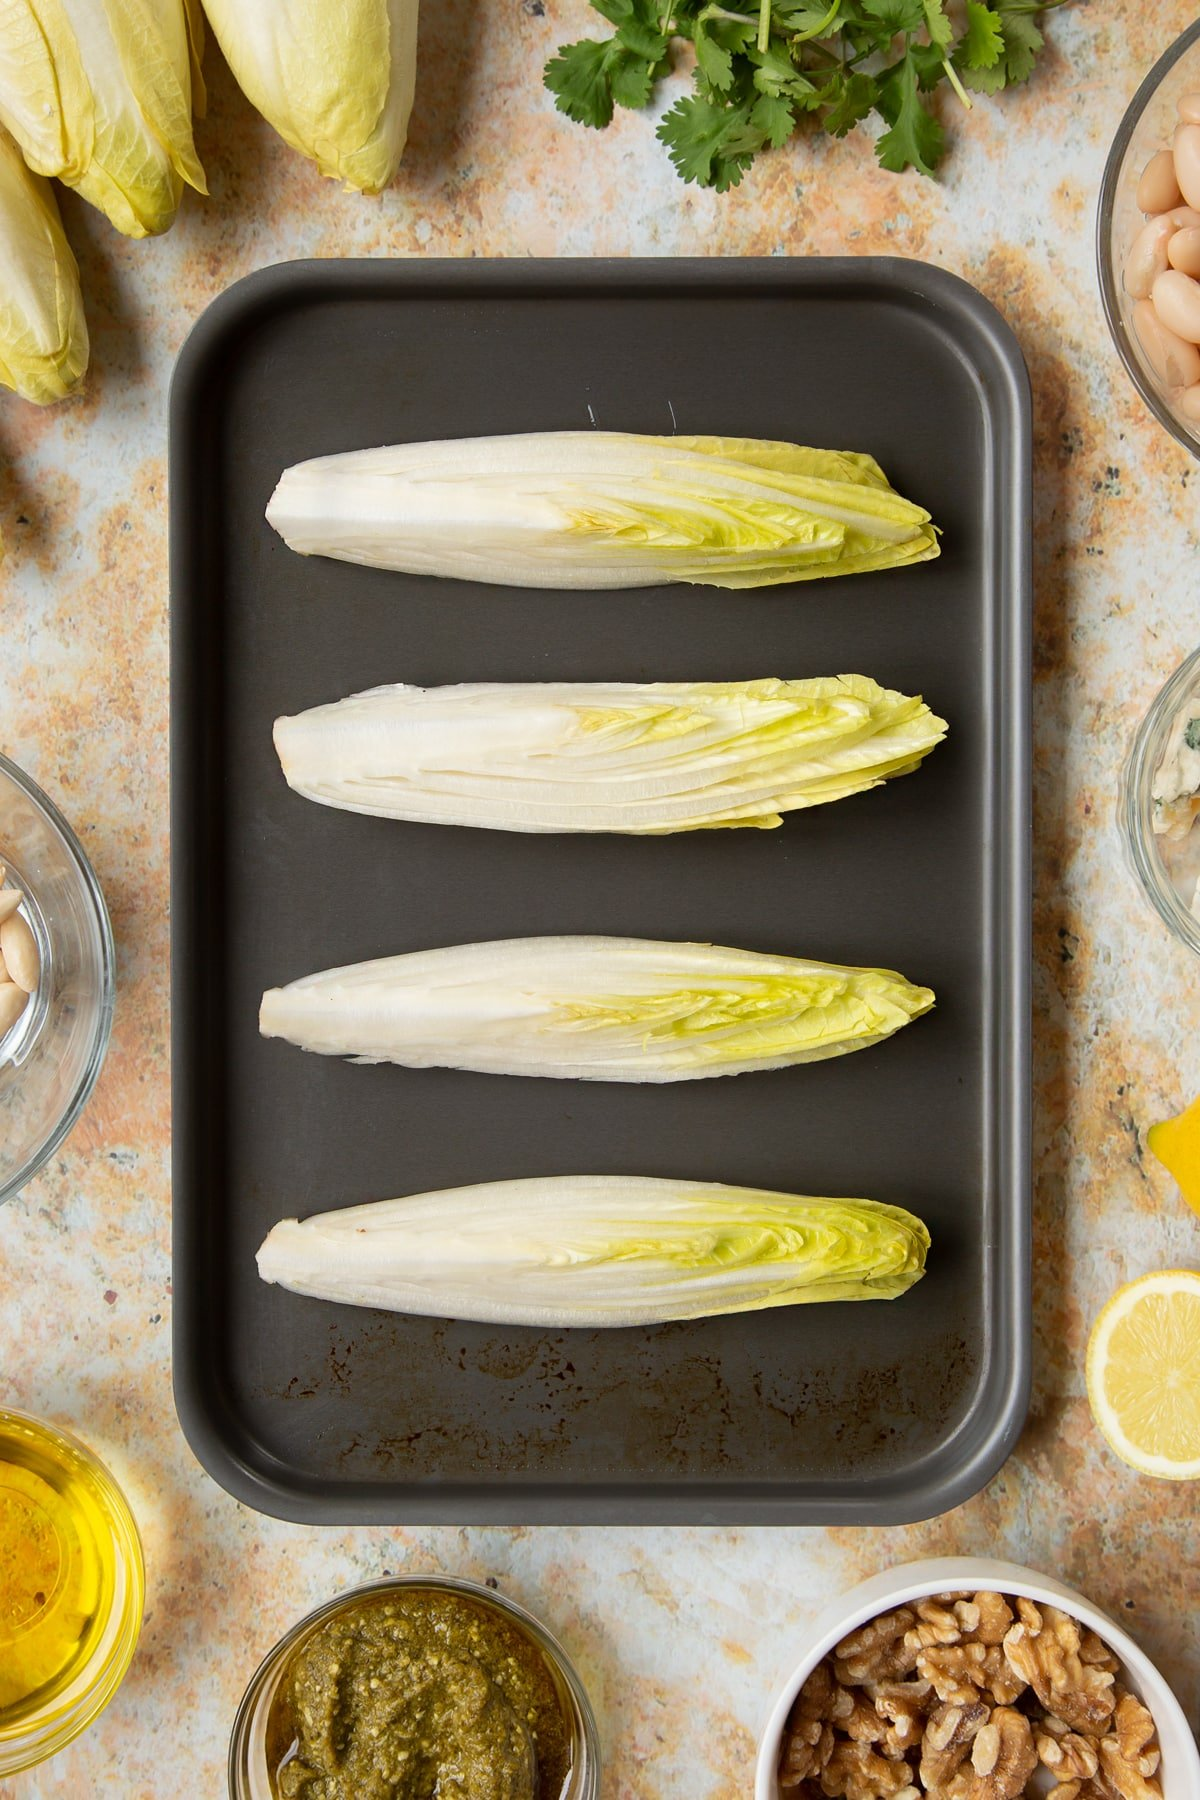 Chicory on a tray.